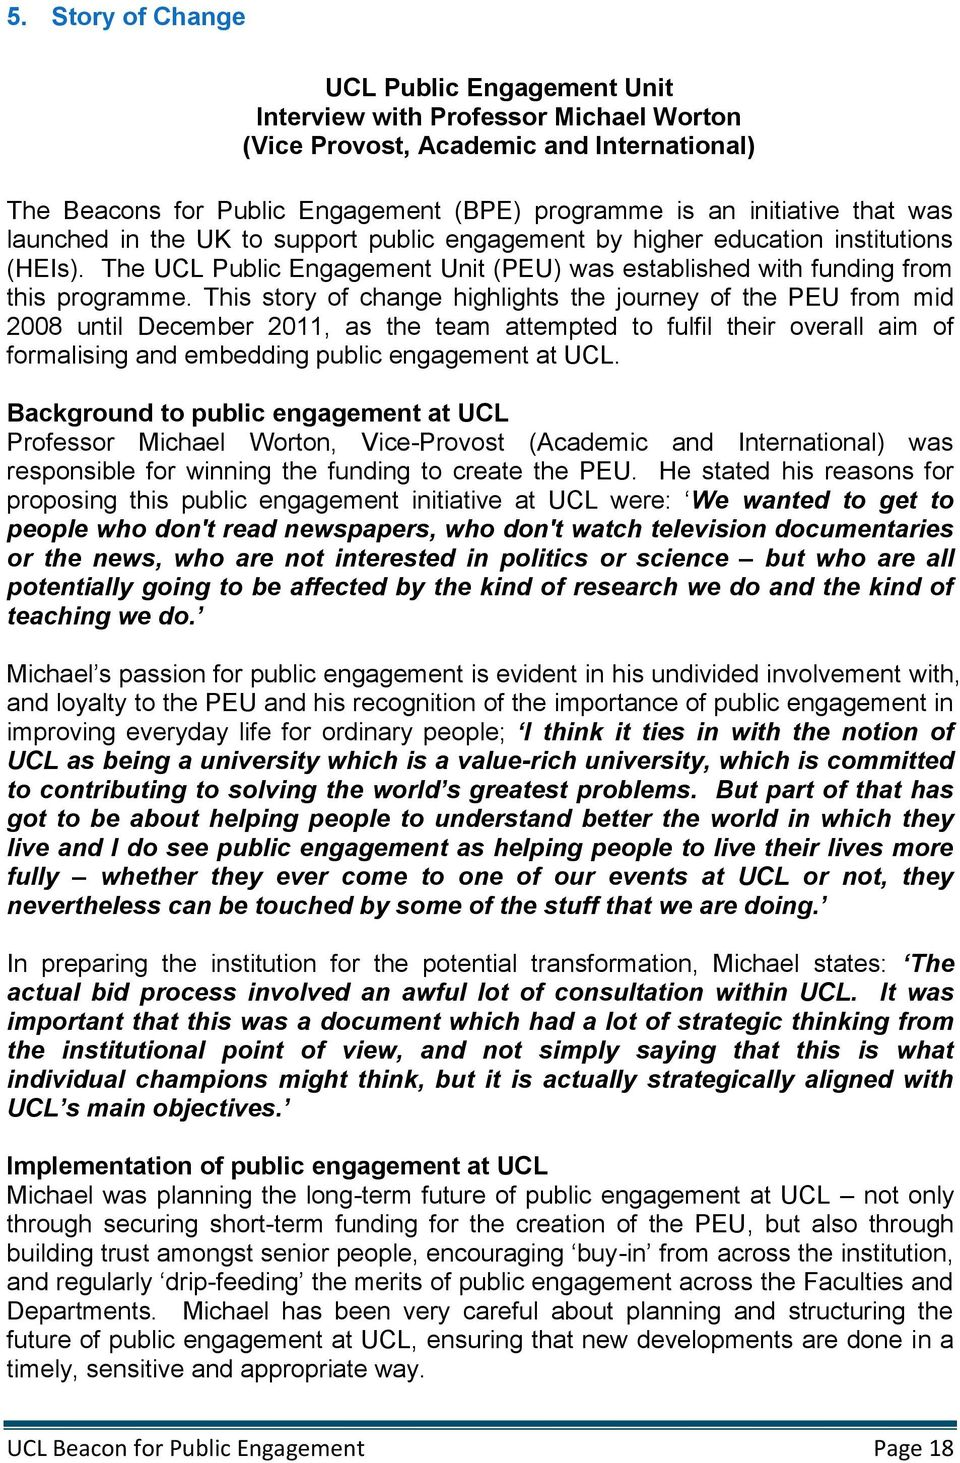 This story of change highlights the journey of the PEU from mid 2008 until December 2011, as the team attempted to fulfil their overall aim of formalising and embedding public engagement at UCL.